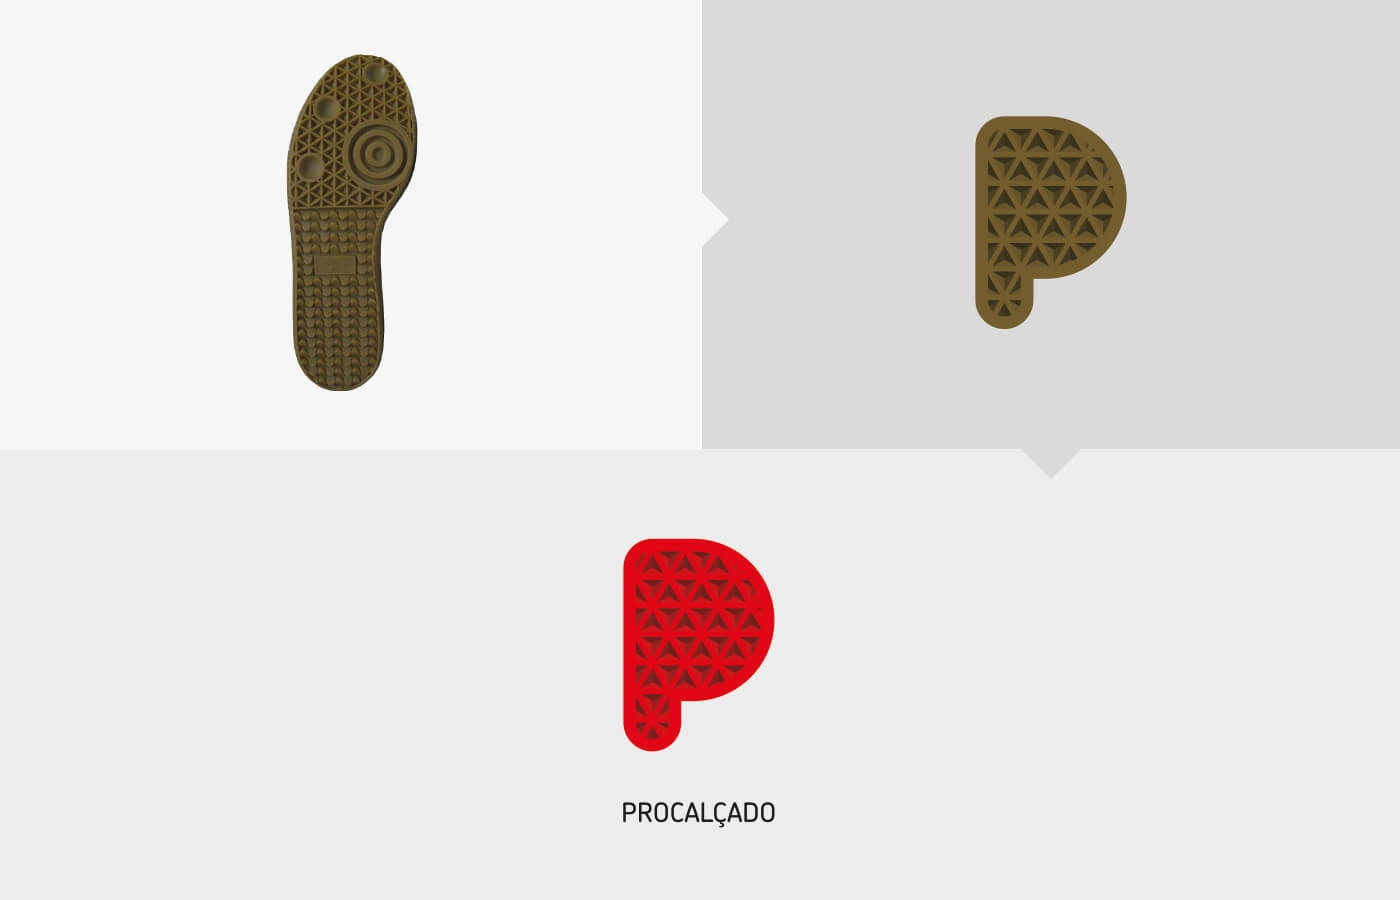 Calçado, solas, branding, indústria, fabricantes, fábrica, estacionária, design, marketing